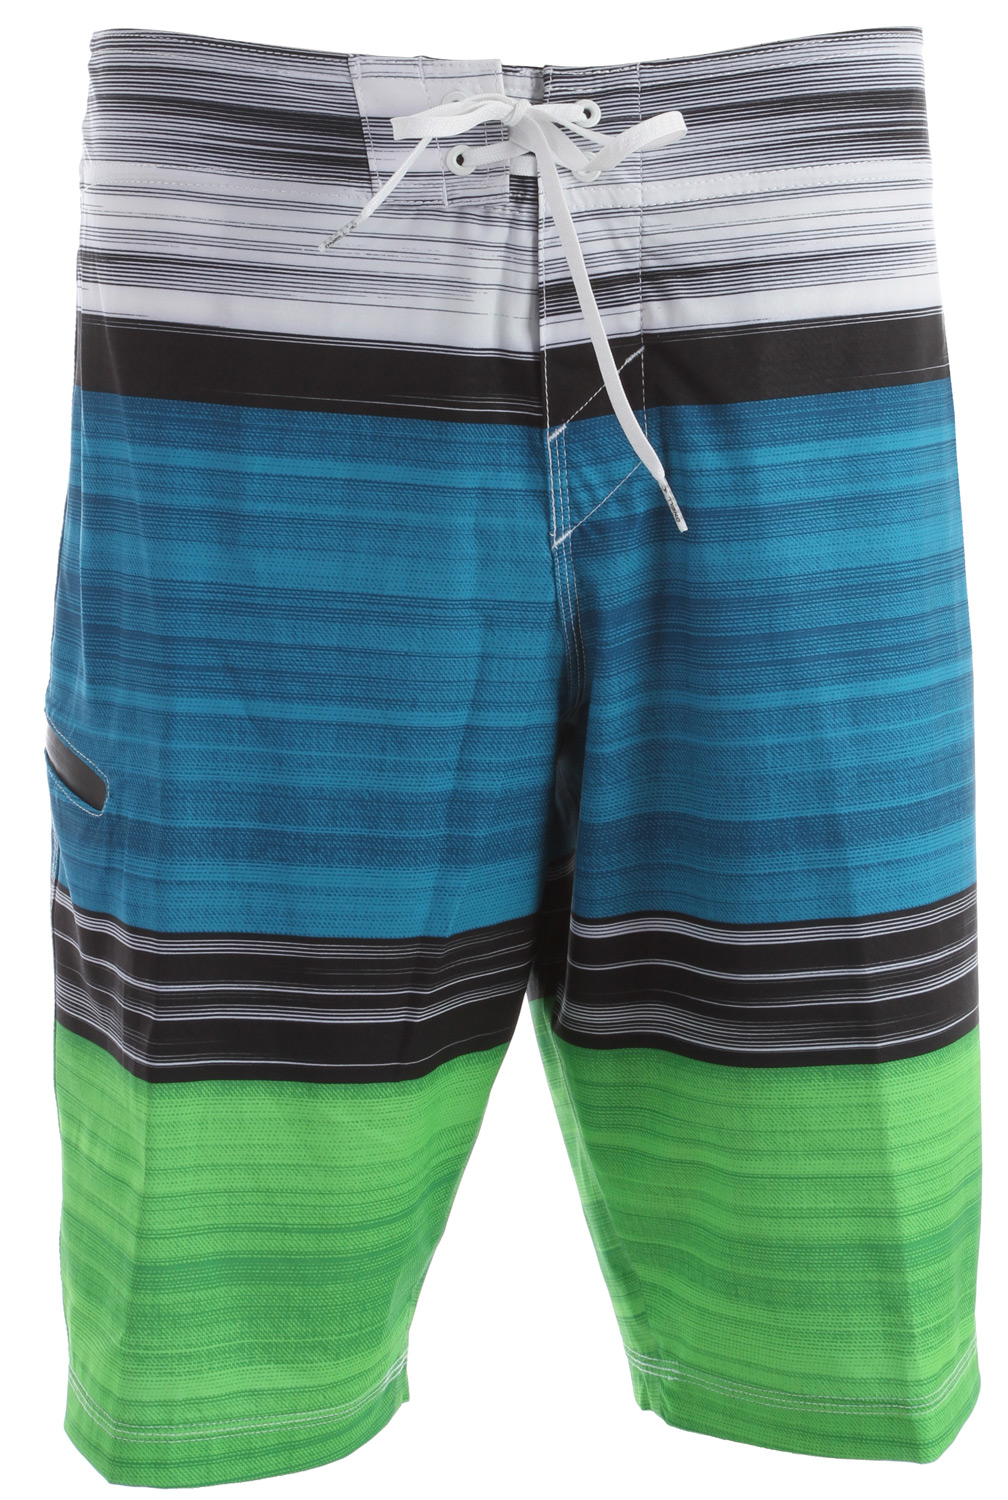 "Surf O'Neill Hyperfreak Bonus Boardshorts are made from Hyperfreak stretch fabric which is extremely flexible and allows a great range of motion.  The blend is 78% Polyester and 22% elastane and uses quick drying technology.  Features include no inseam construction for reduced chafing, front tie closure with superfly, zippered, welded pocket at right leg, machine wash and tumble dry.  The O'Neill Hyperfreak Bonus Boardshort will make you look good on or off your board!Key Features of the O'Neill Hyperfreak Bonus Boardshorts:  Hyperfreak stretch  21"" Outseam Boardshorts  Superfly Closure  Locking Drawcord  Ultrasonically welded inseam  Welded pocket  Screened Logos - $51.95"